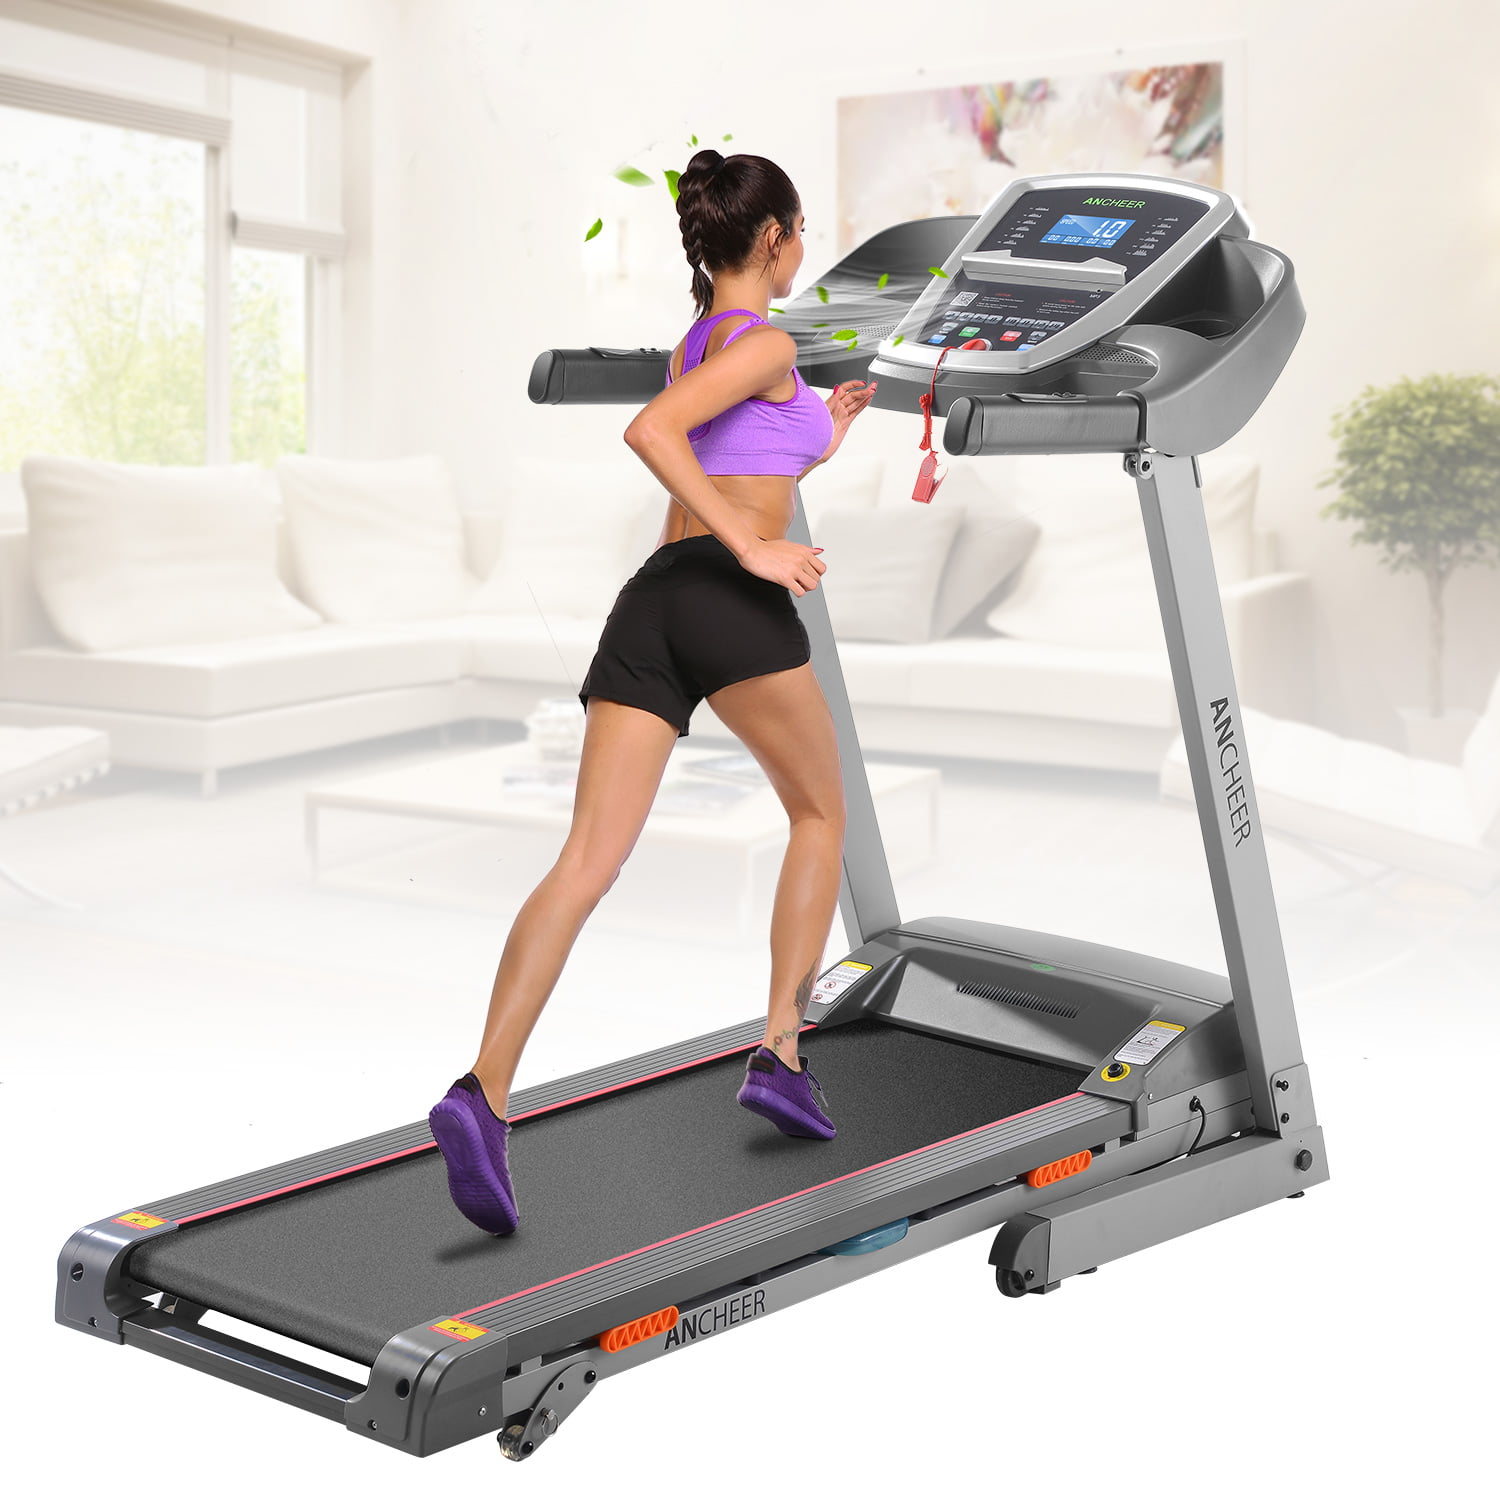 3.0HP Electric Treadmill Exercise Equipment Machine Running Training Fitness Gym Home SMT by